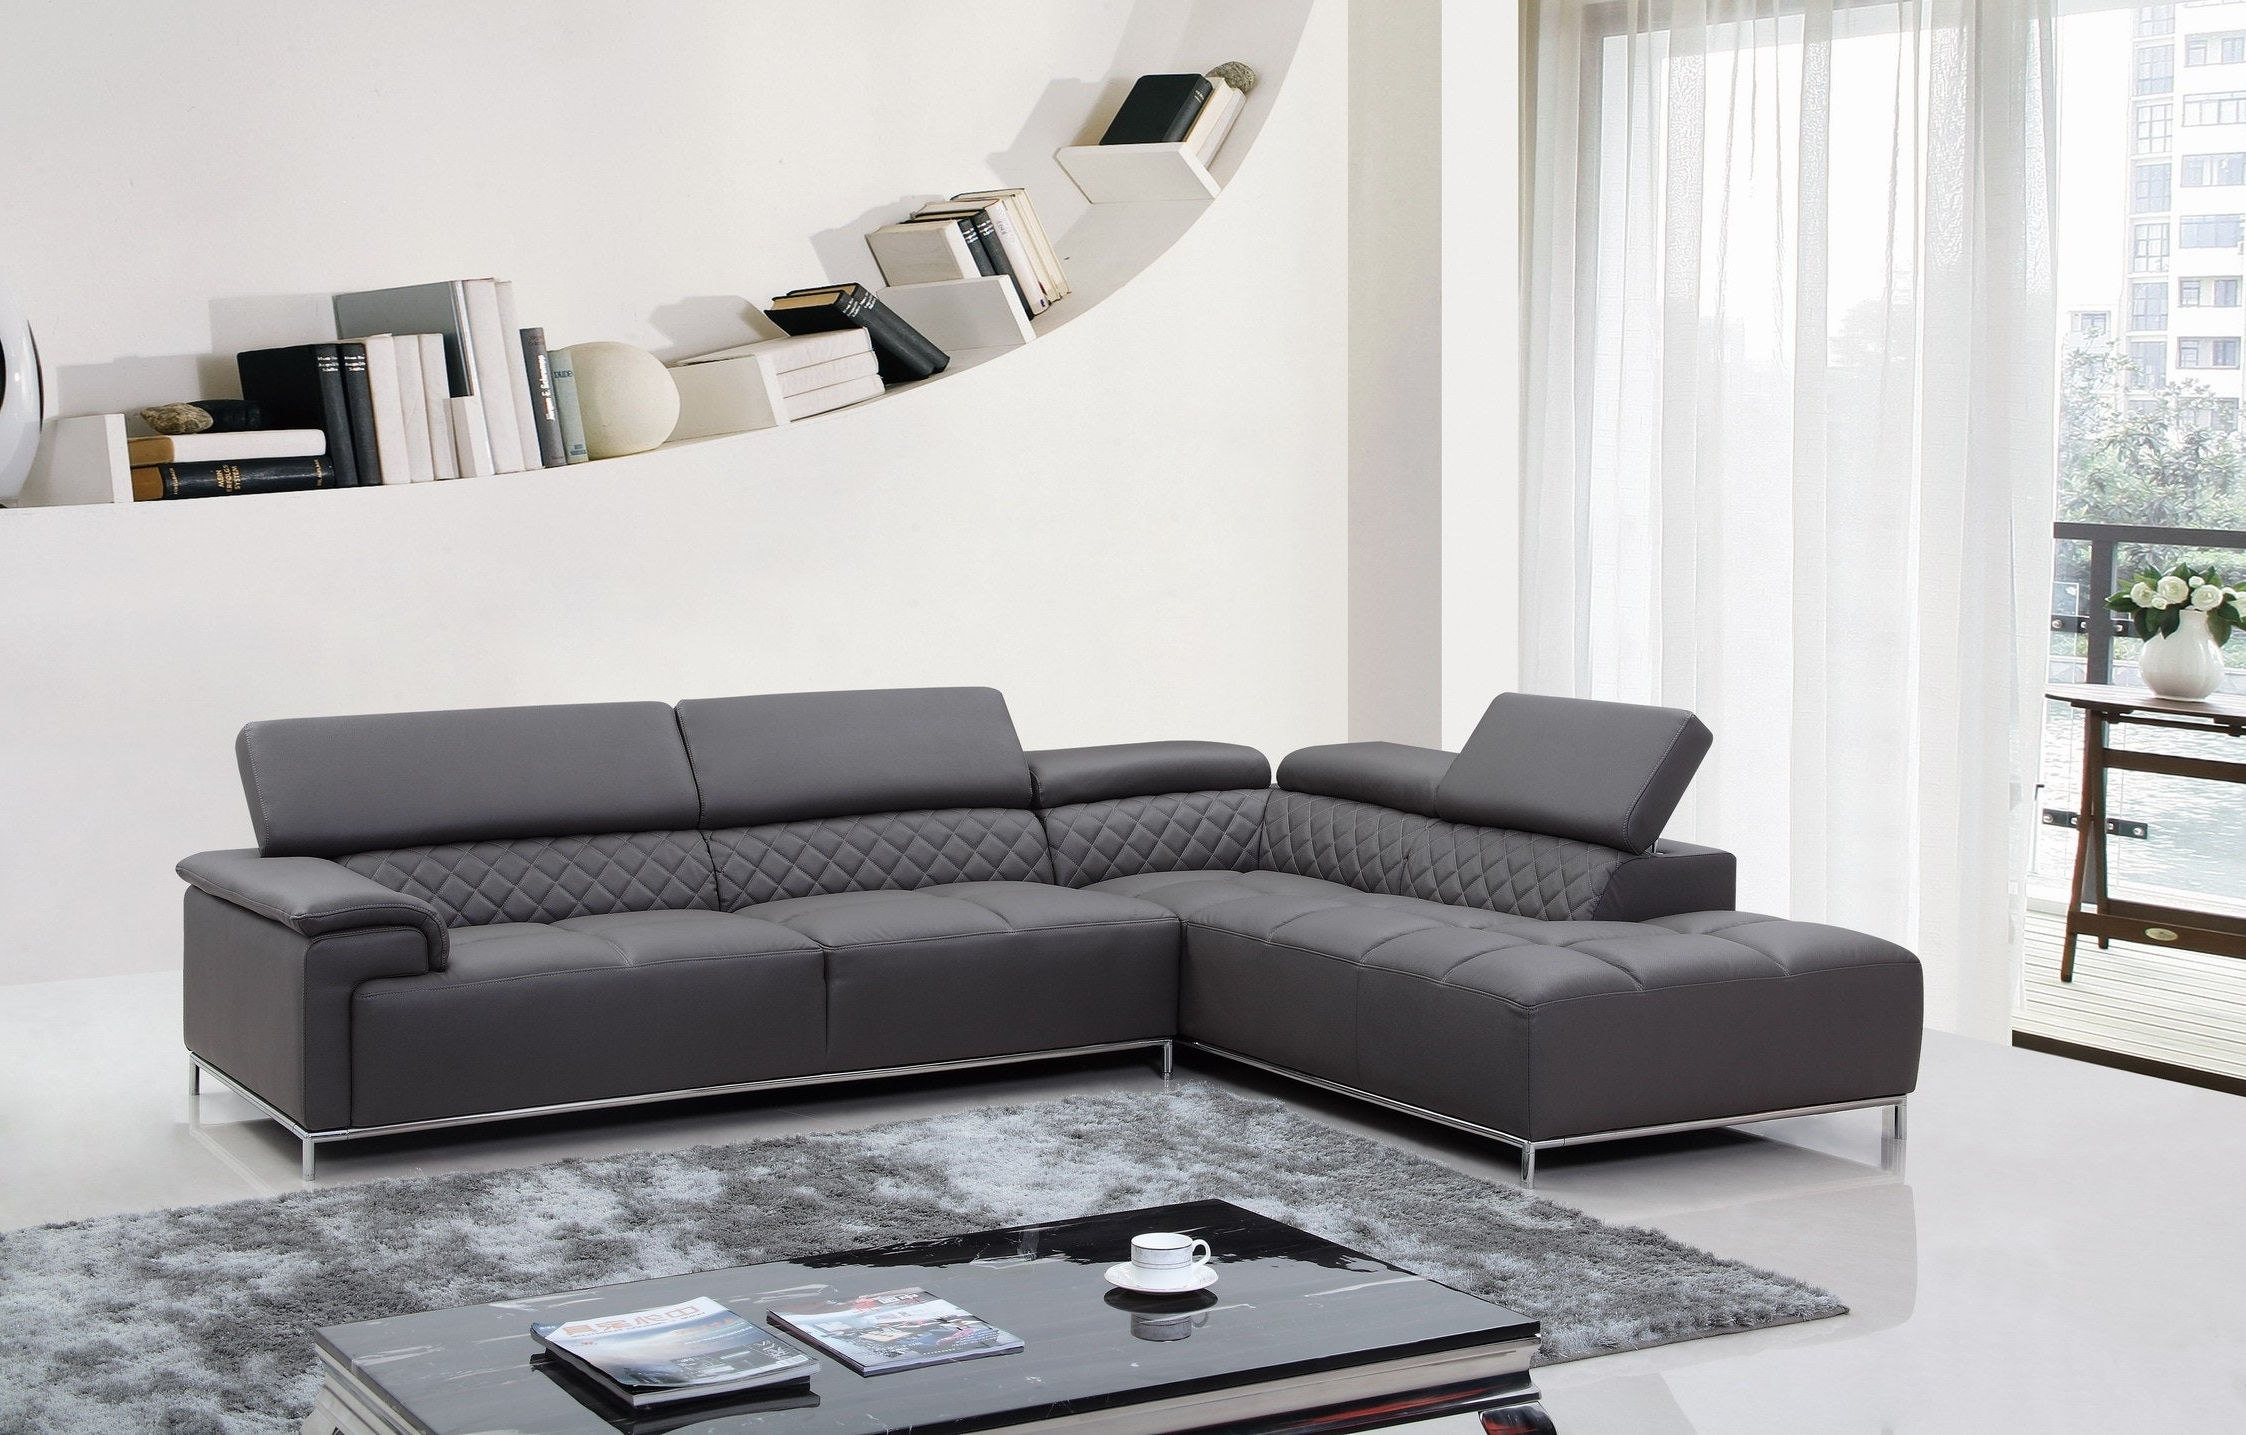 Sectional Sofas Under 600 Pertaining To Famous Furniture : Awesome Cheap Sectional Sofas Under 300 Best Of (View 10 of 15)